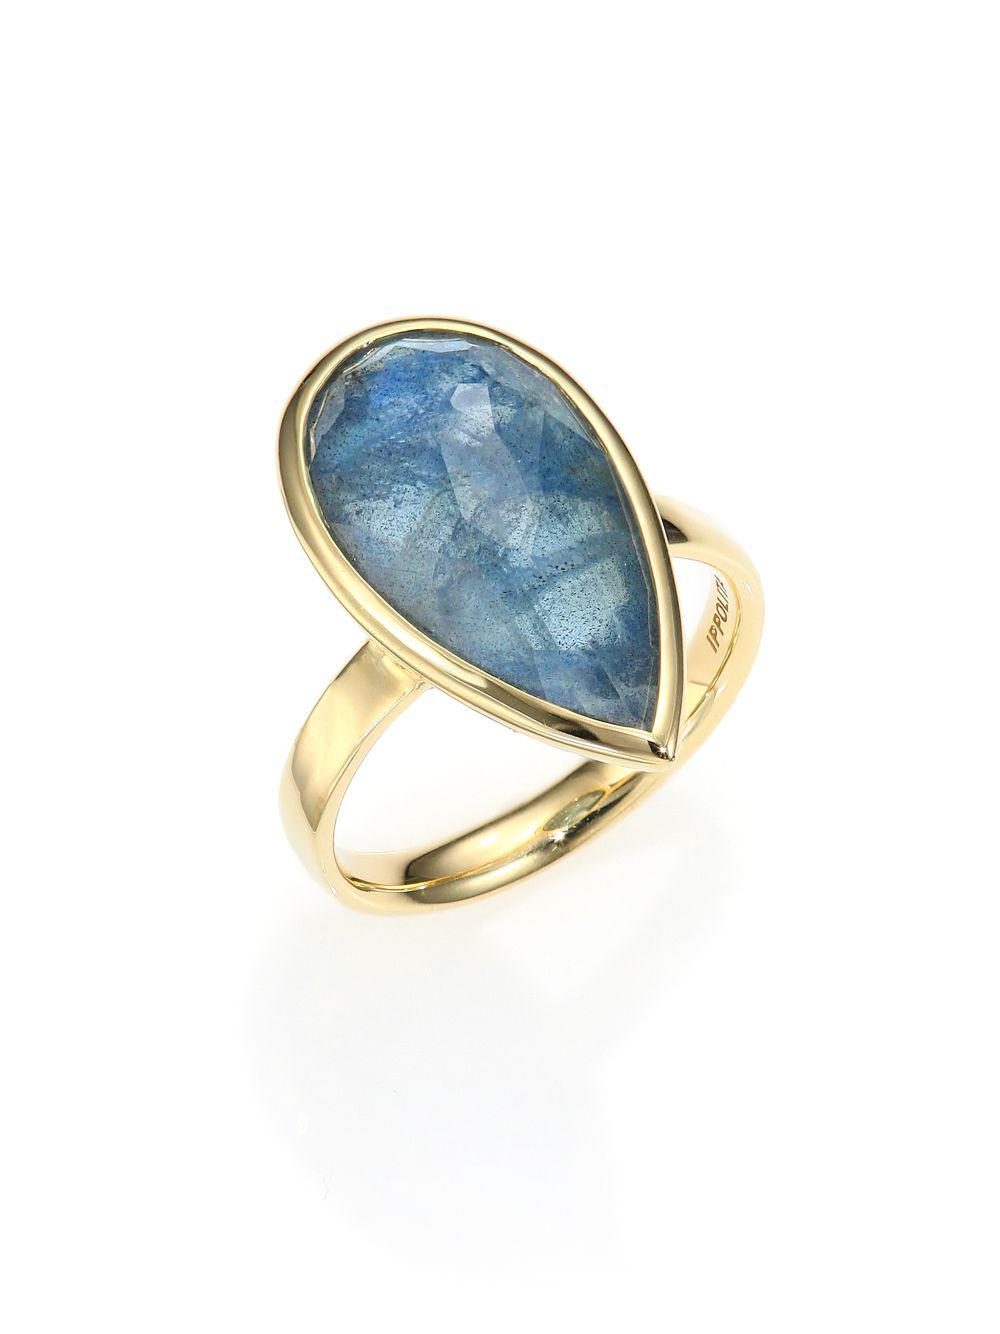 Ippolita 18k Rock Candy Square Six-Stone Ring in MOP Doublet, Size 7